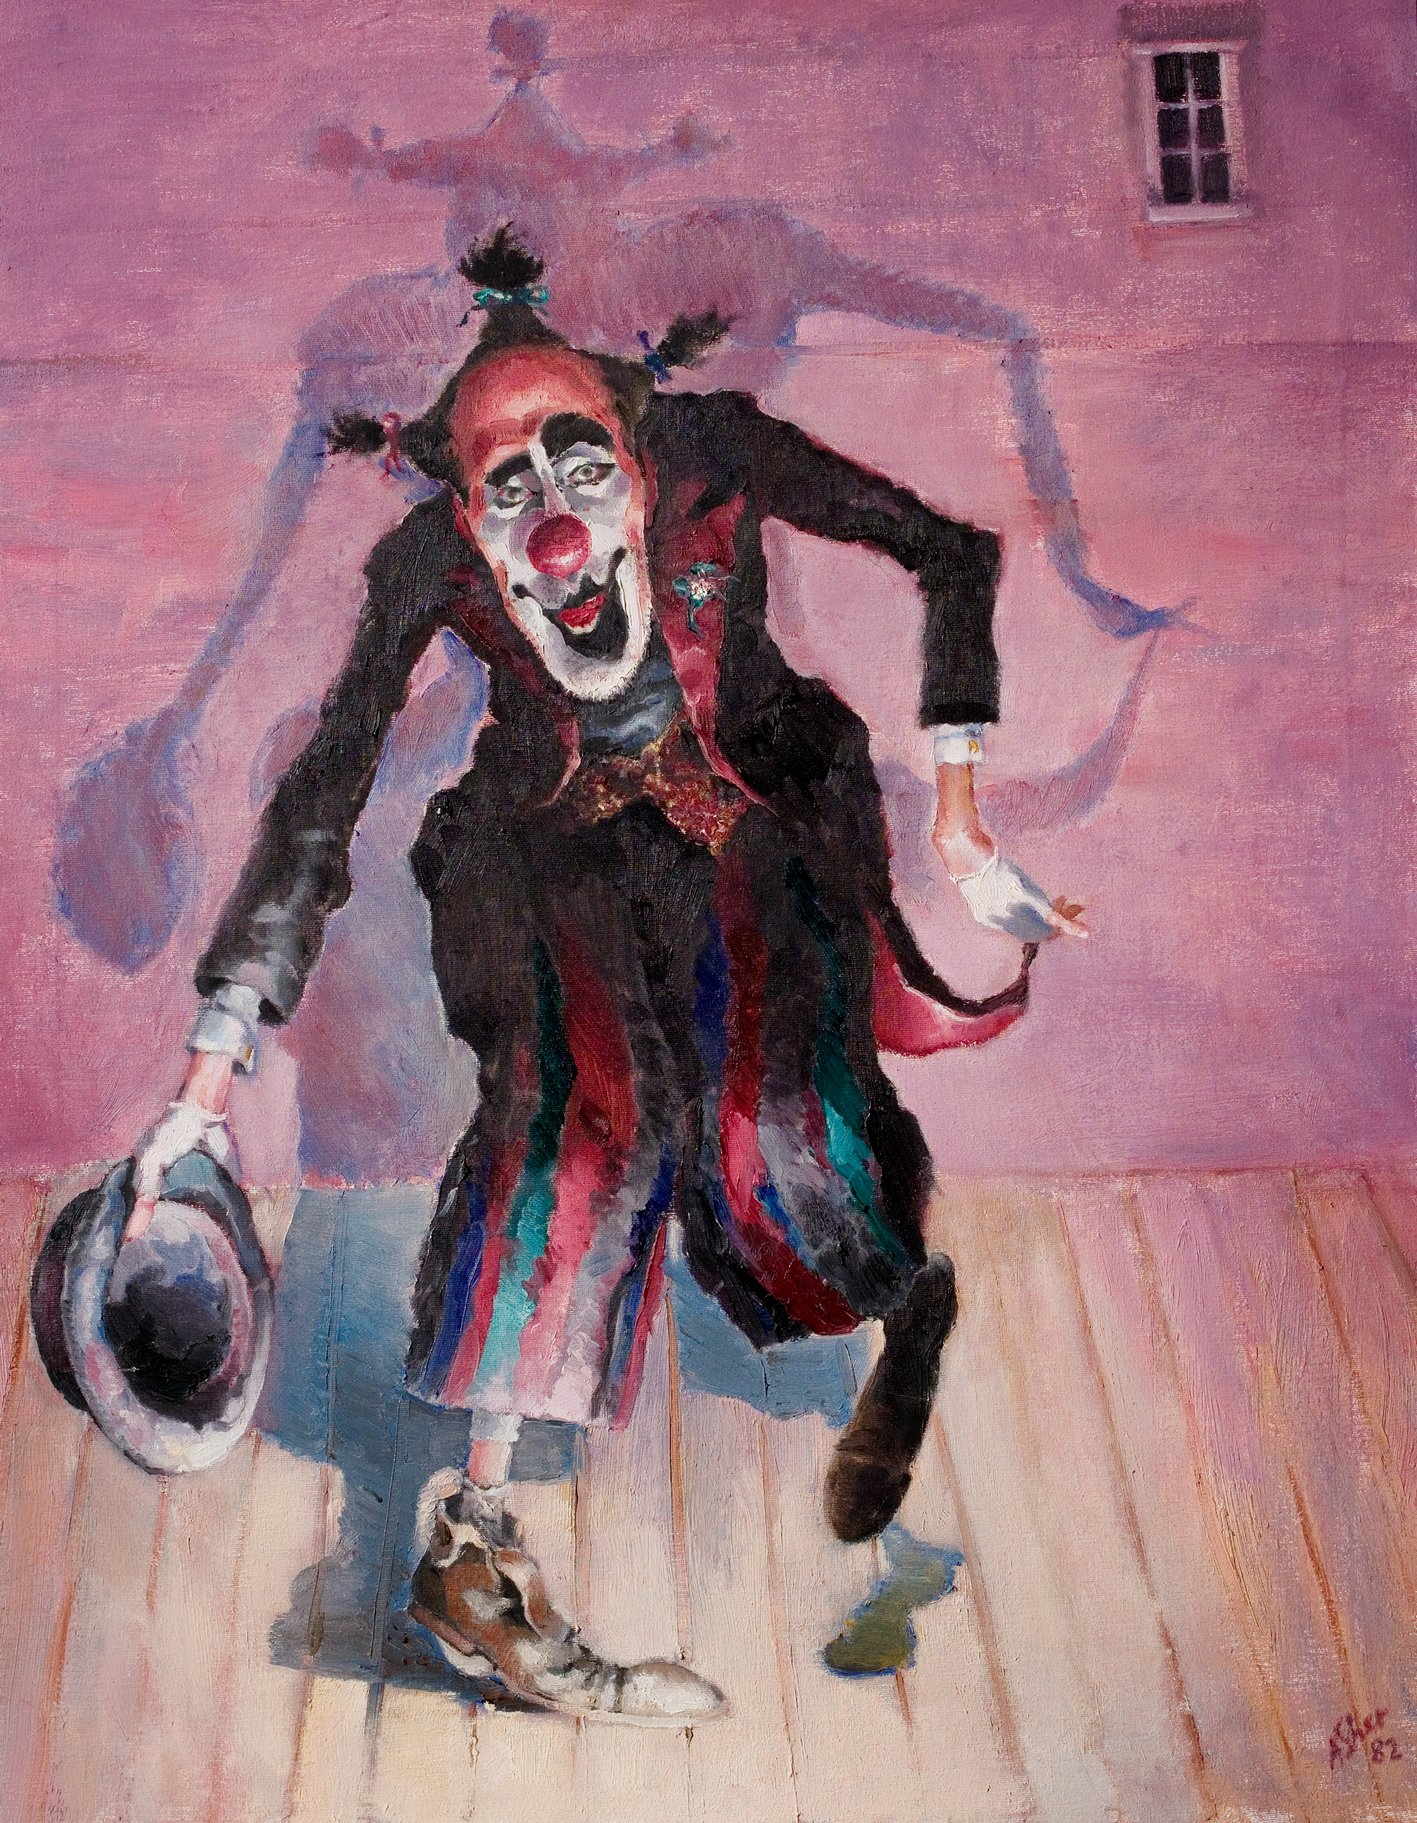 Self portrait oil painting by Antony Sher as the Fool in King Lear, 1982, posed like a clown taking a bow on stage